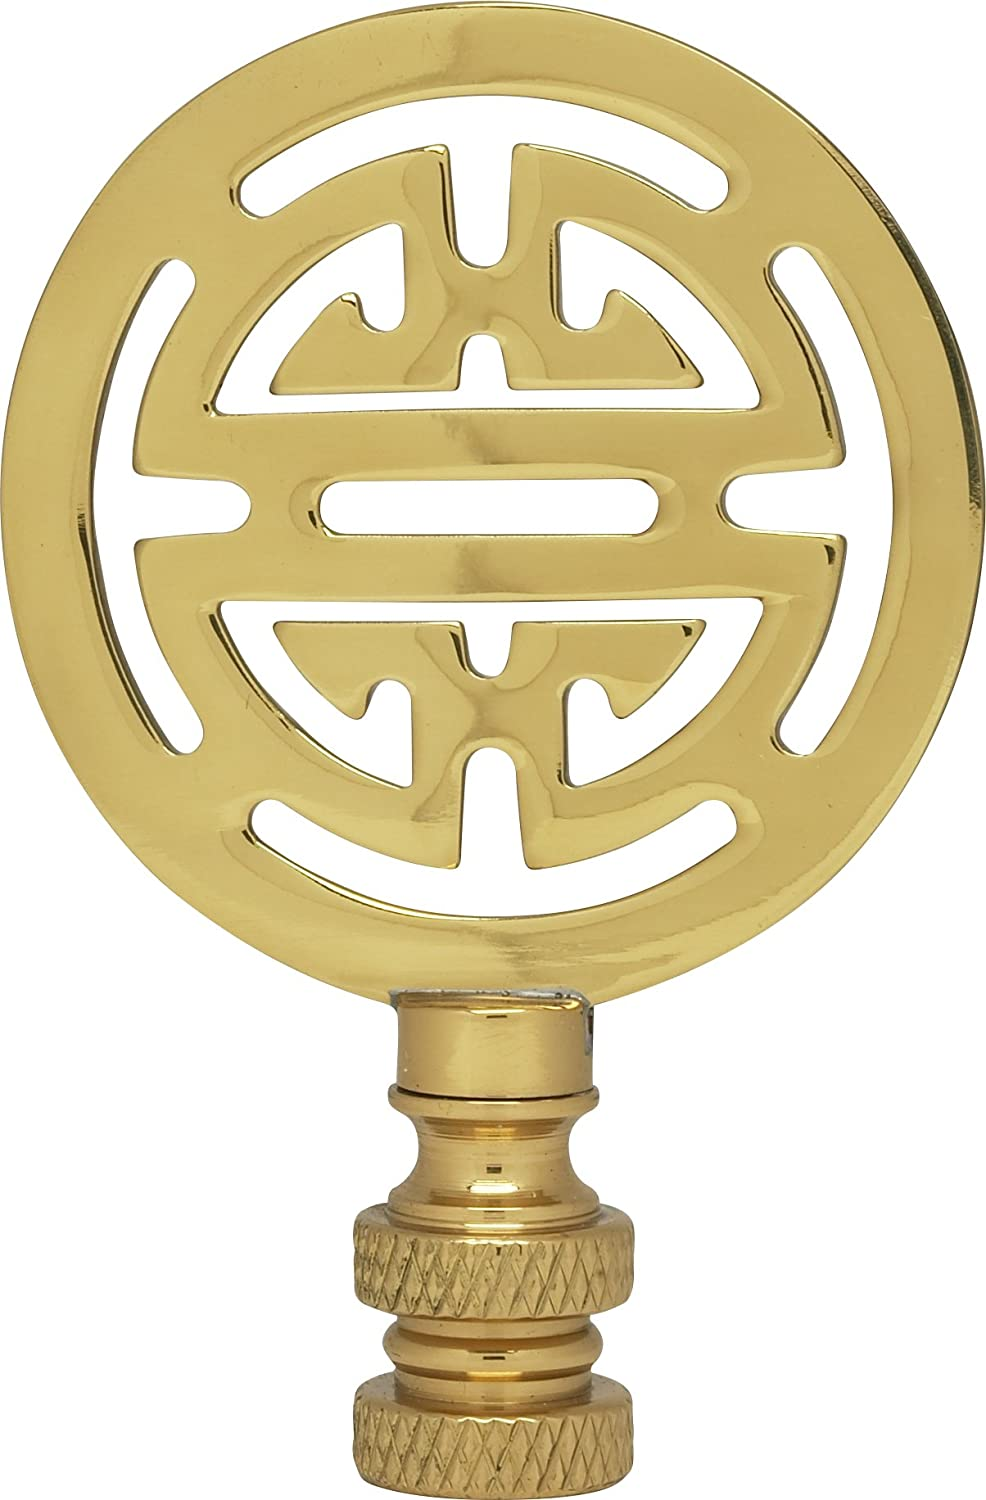 Satco Oriental Brass Finial model number 90-1747-SAT